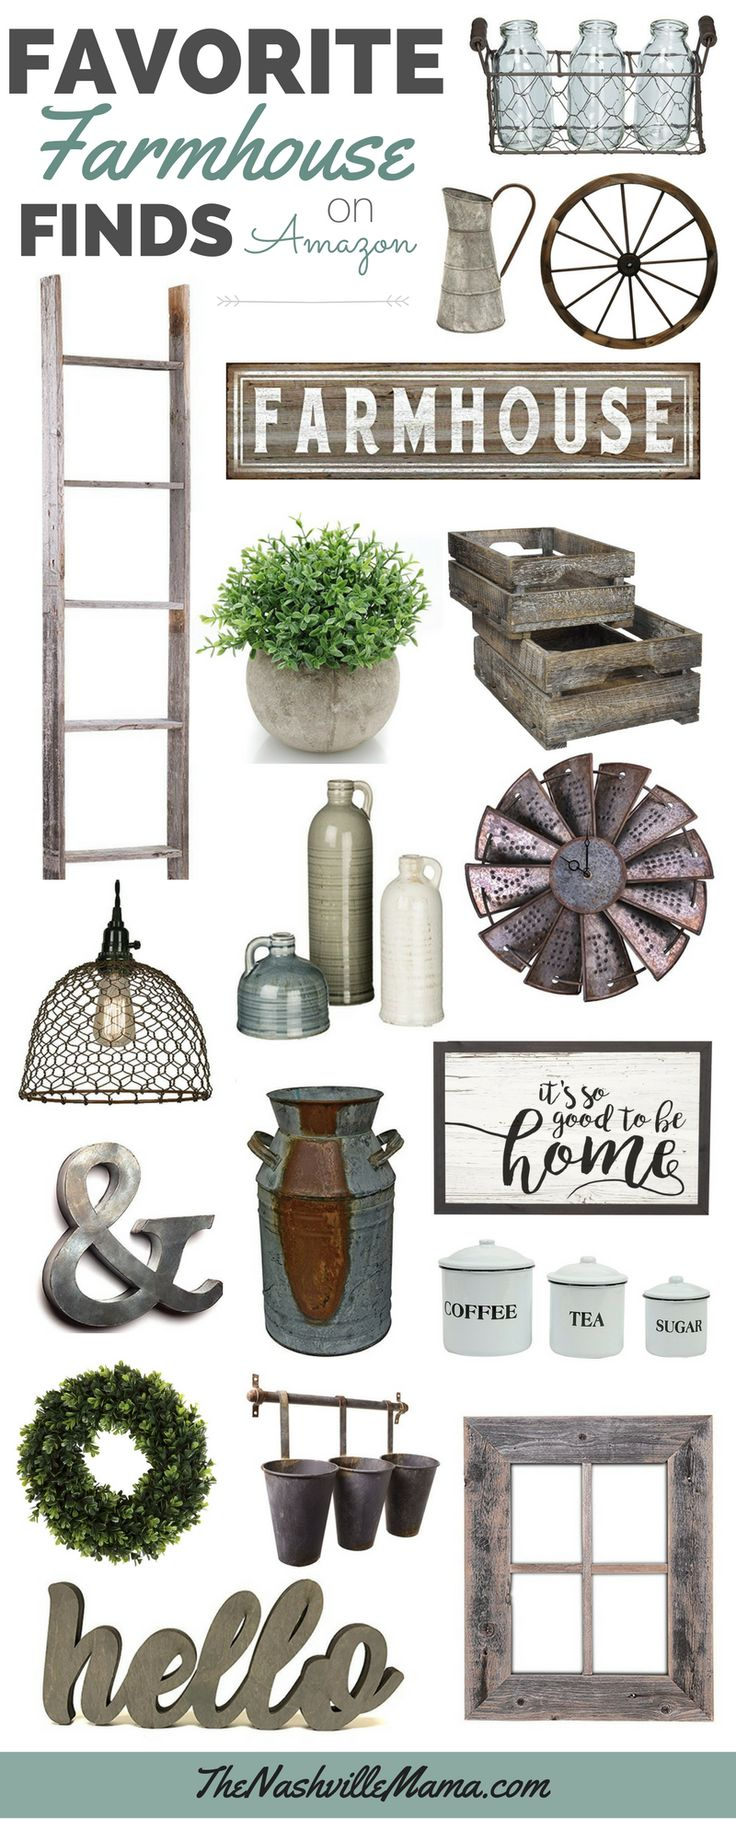 Favorite Farmhouse home decor on Amazon. Fixer Upper style. Rustic Vintage decor.